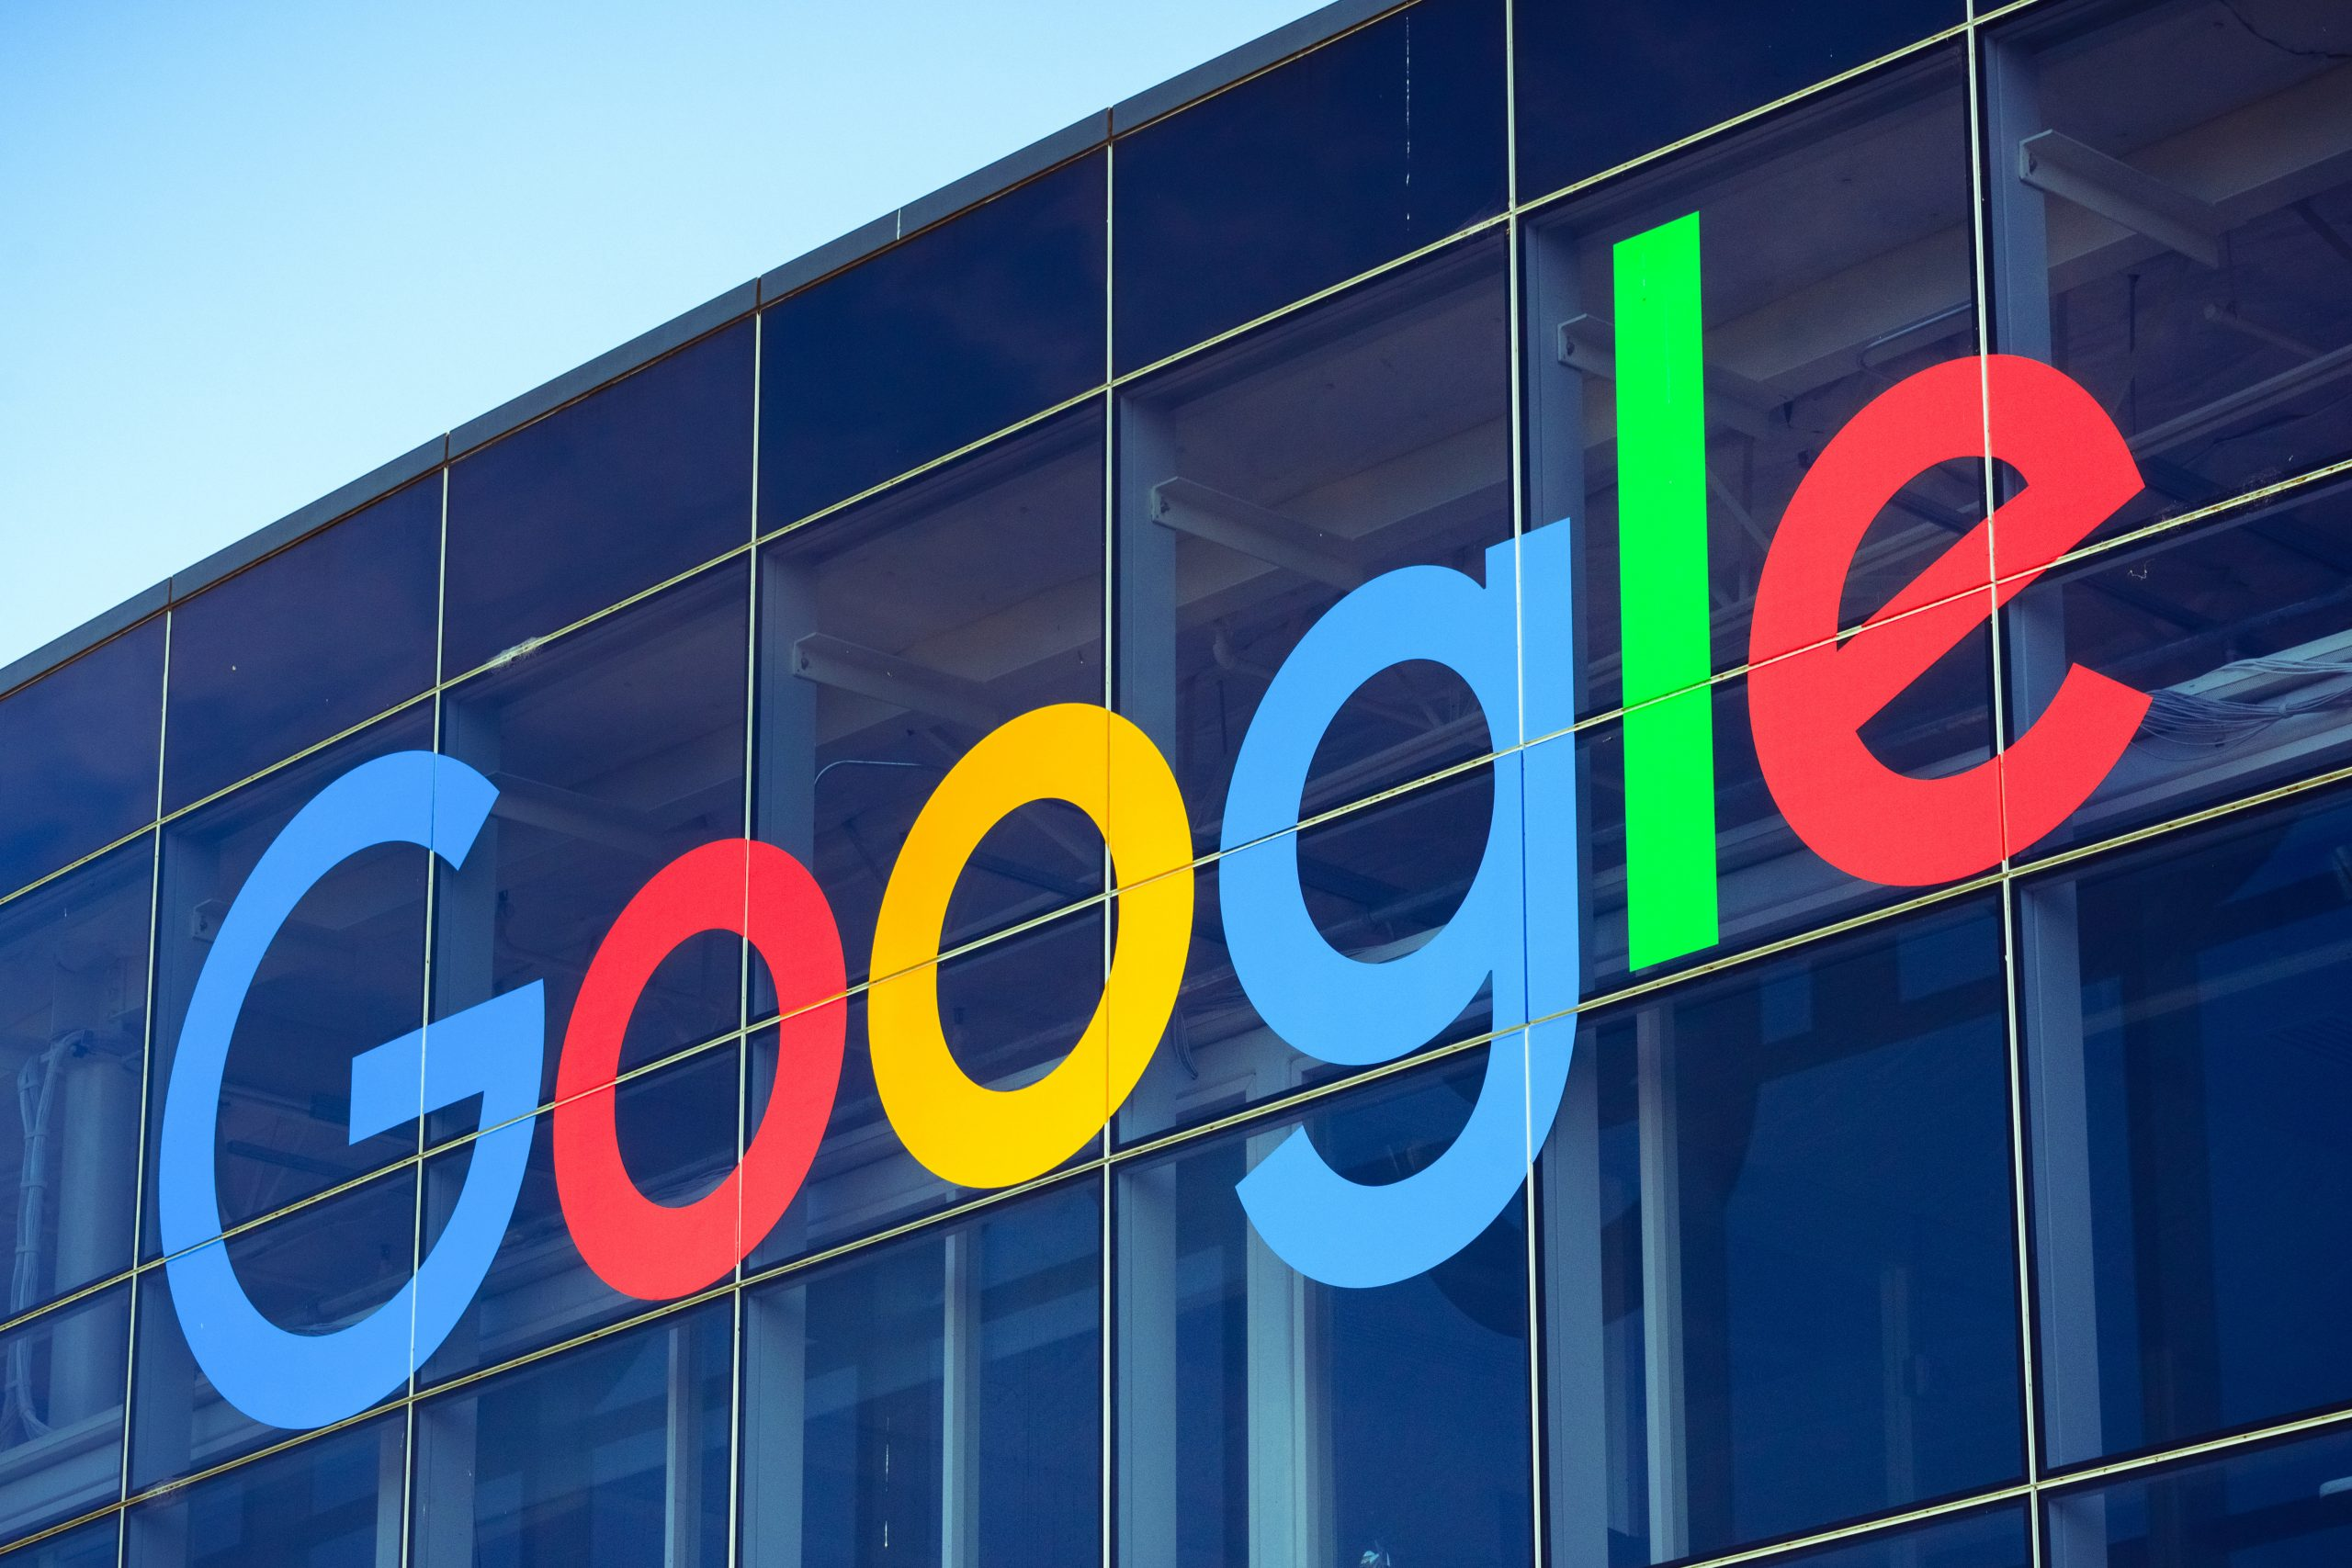 Google Announces New Structured Data for COVID-19 Business Updates